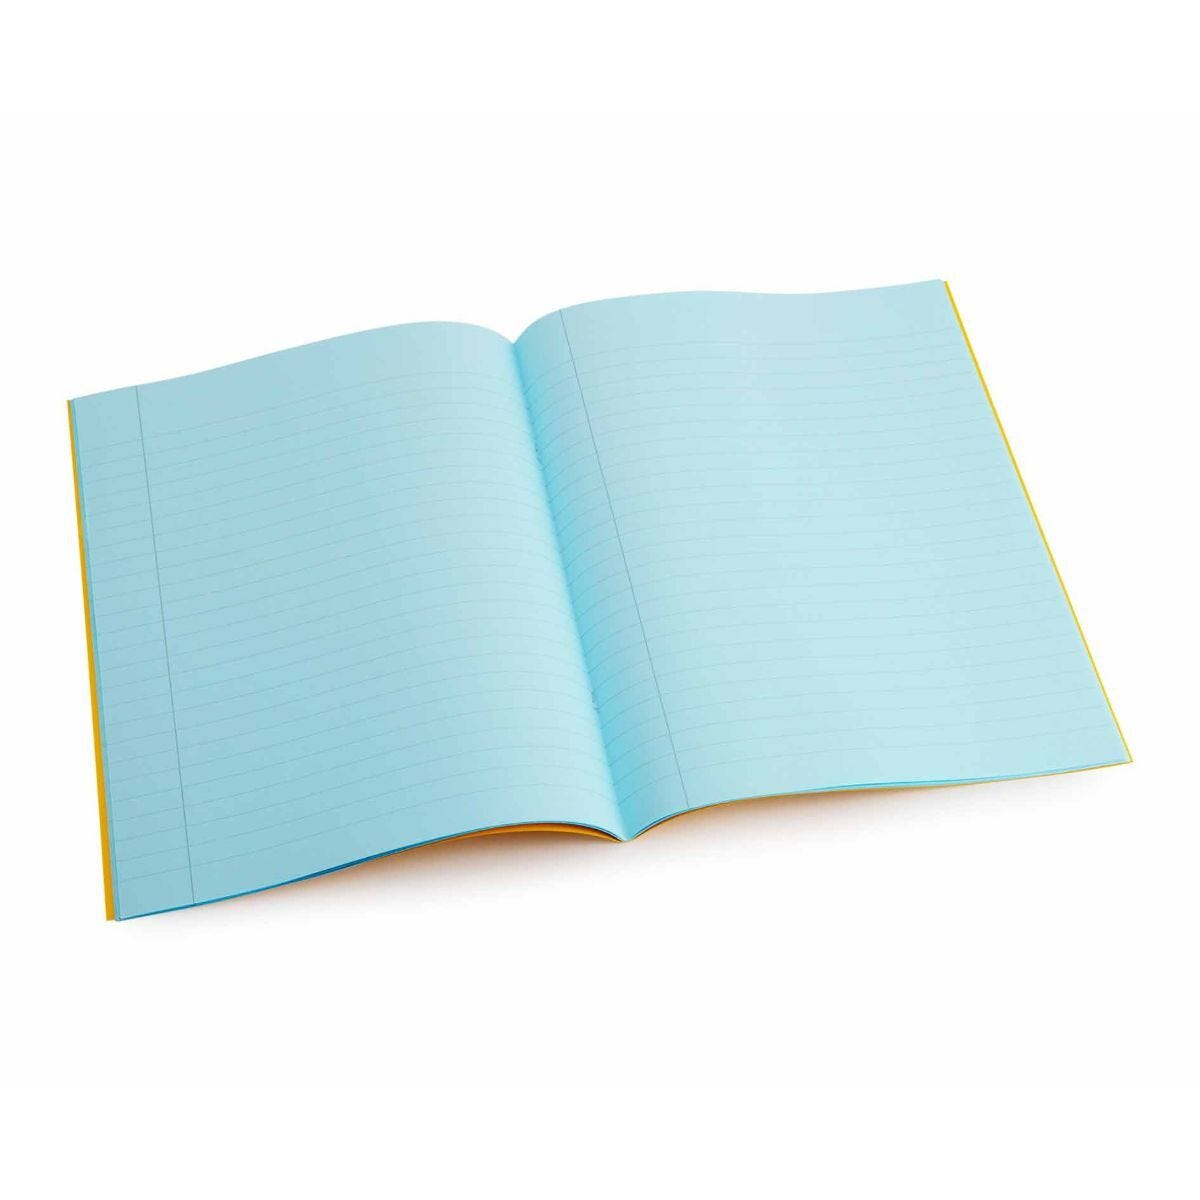 Tinted Exercise Books Lined A4 10mm Aqua